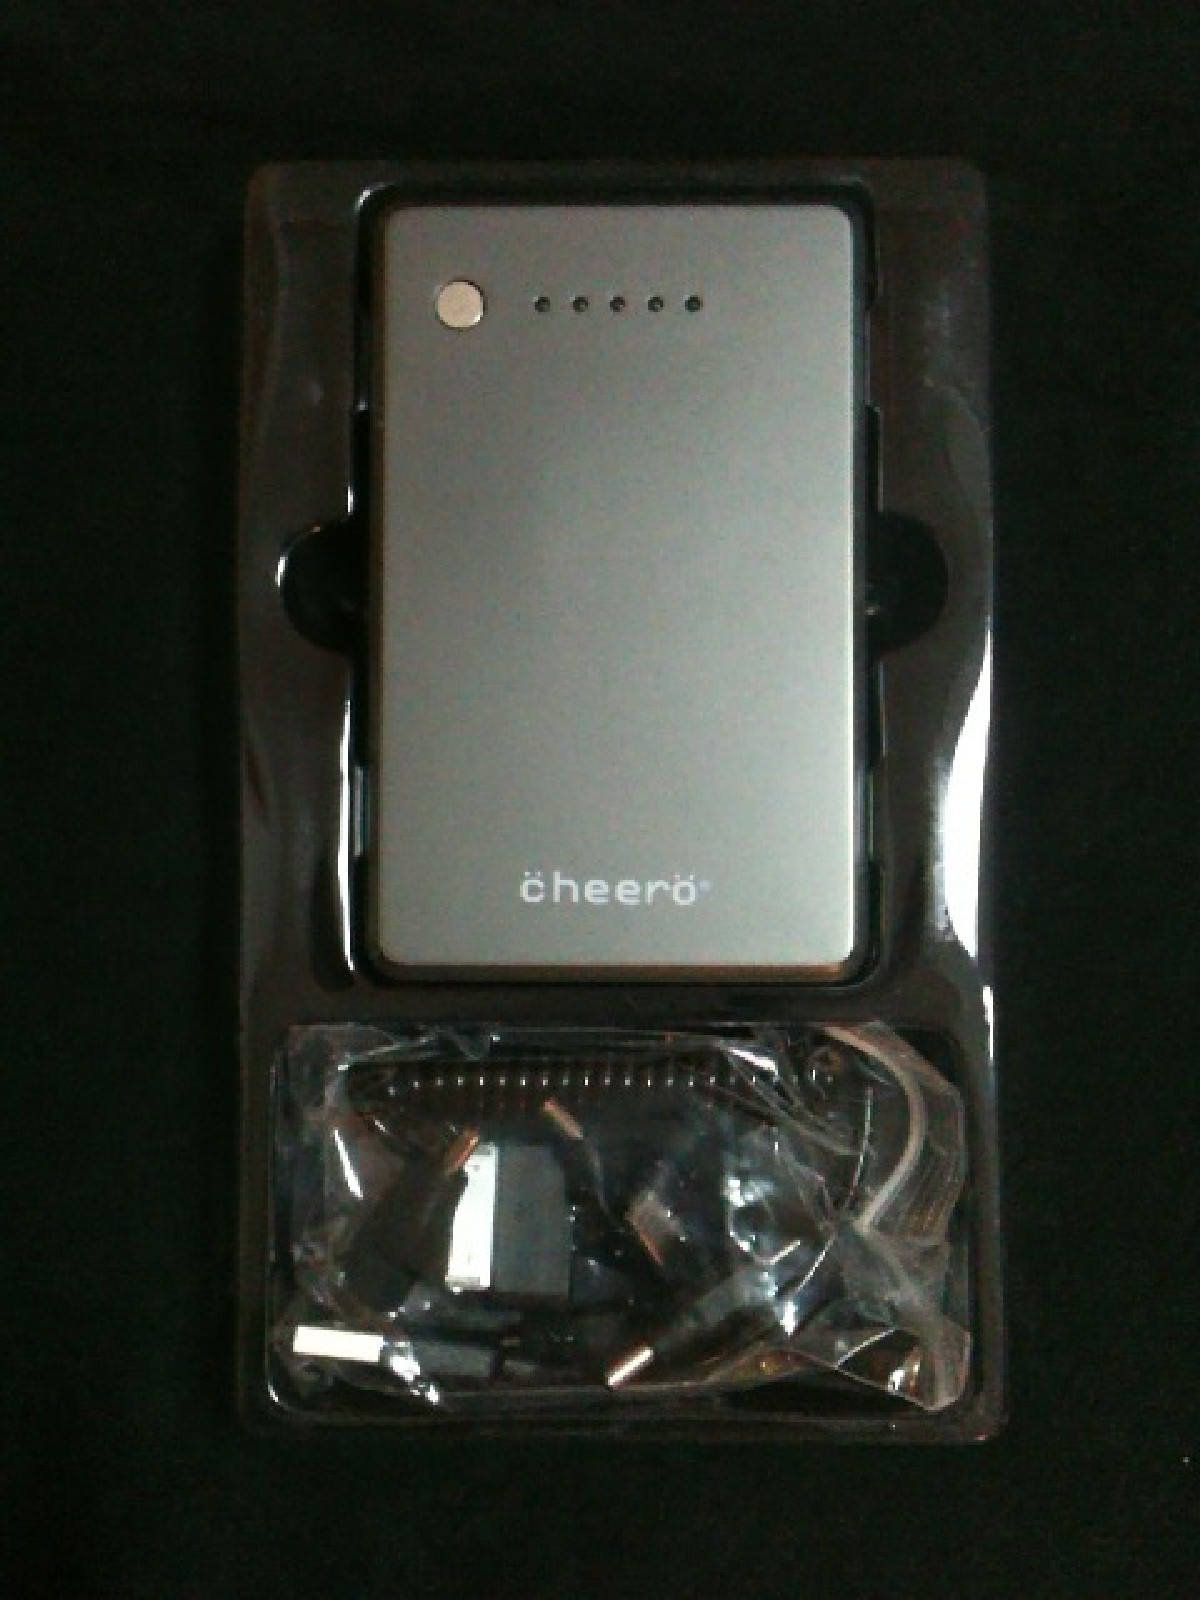 cheero_Power_Plus_006.jpg